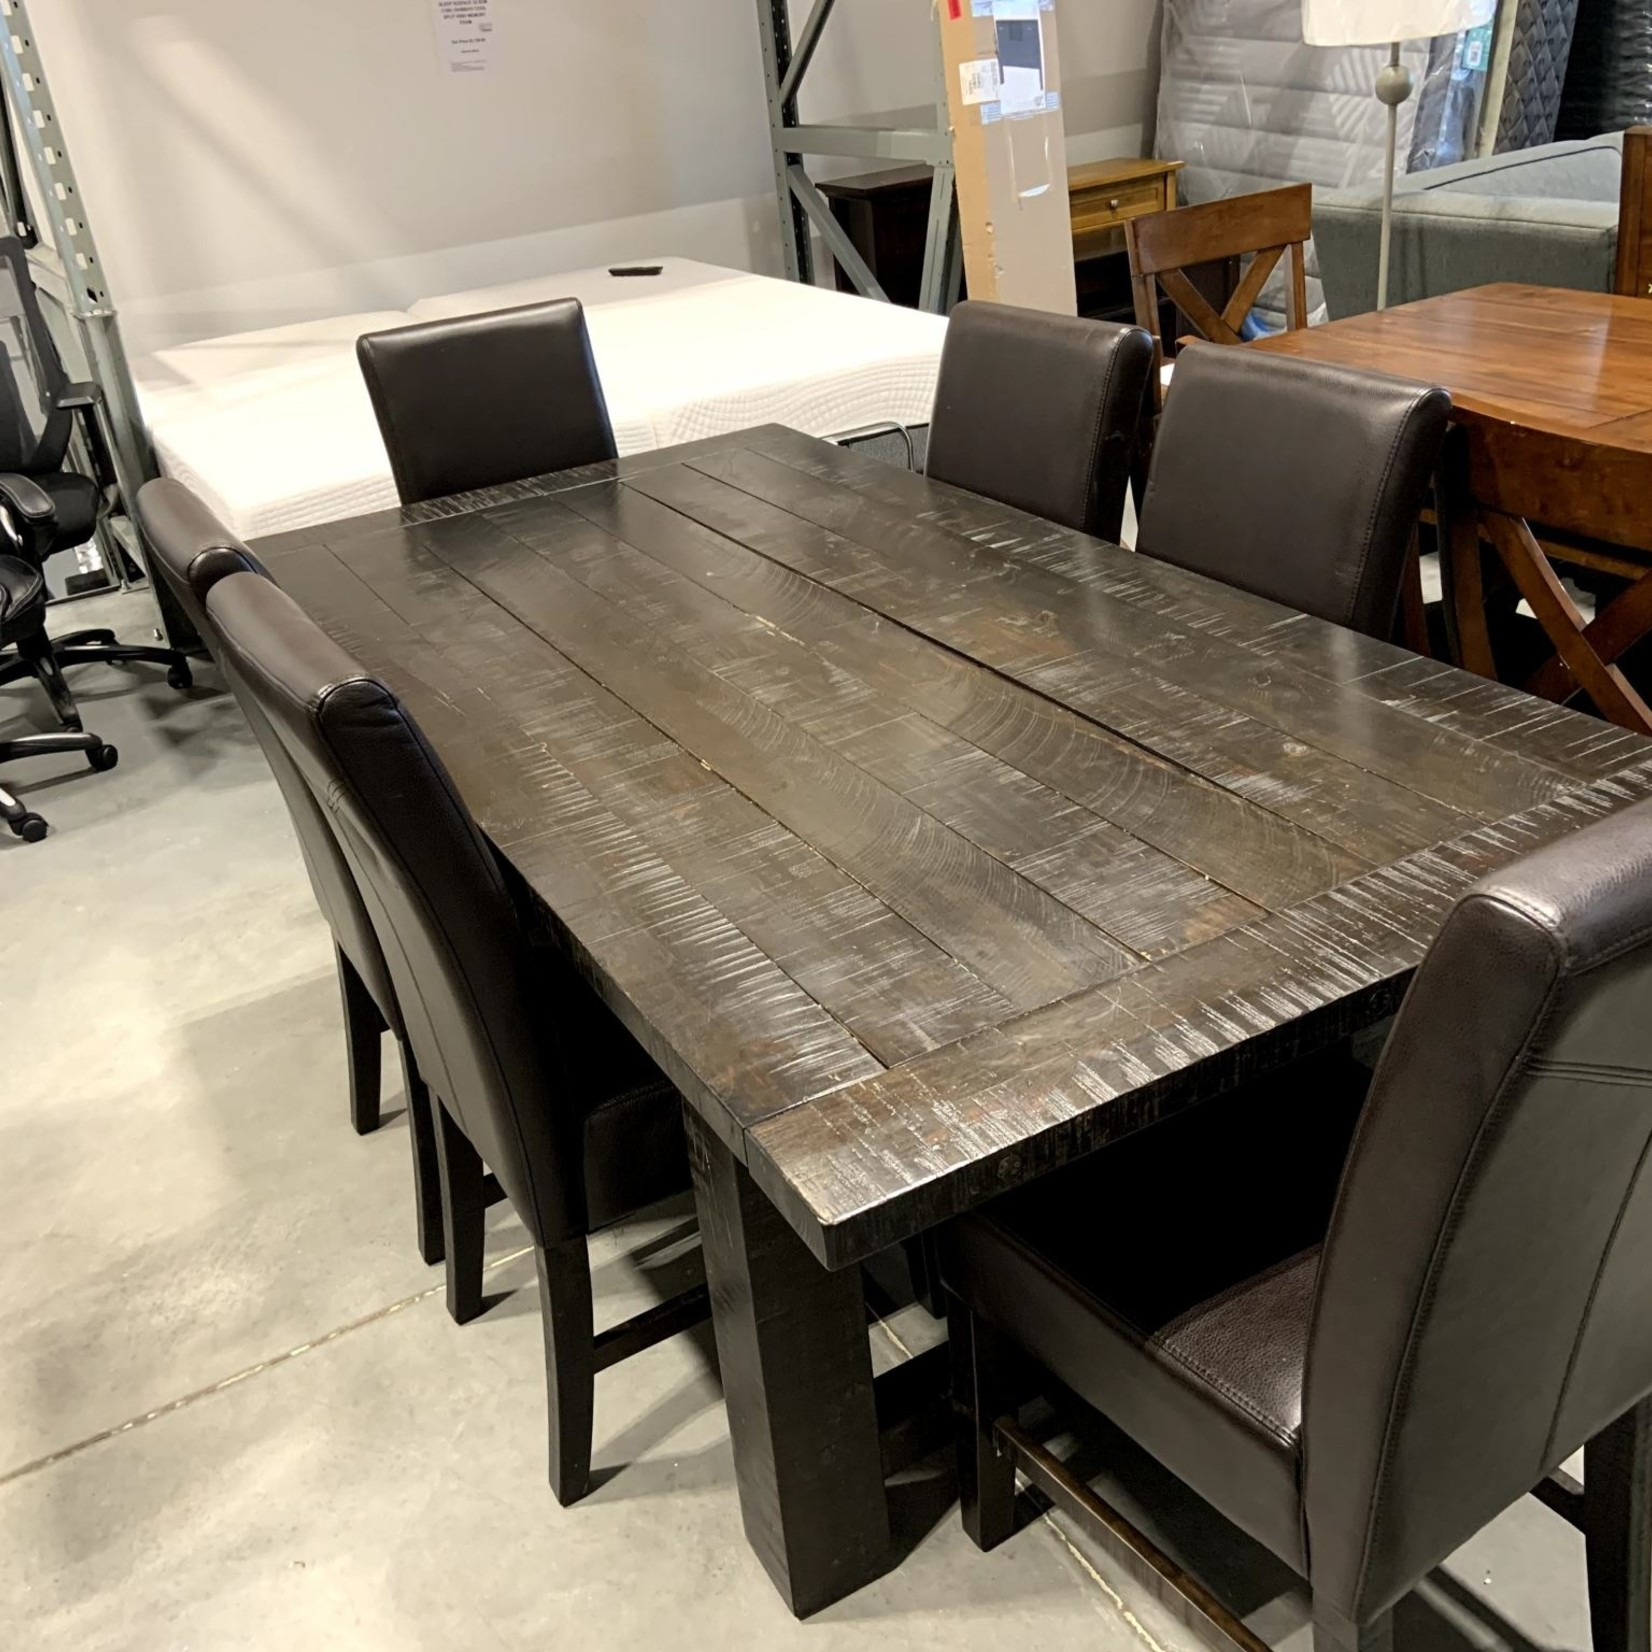 7PC Rustic Plank Wood Dining Table with Bonded Leather Dining Chairs